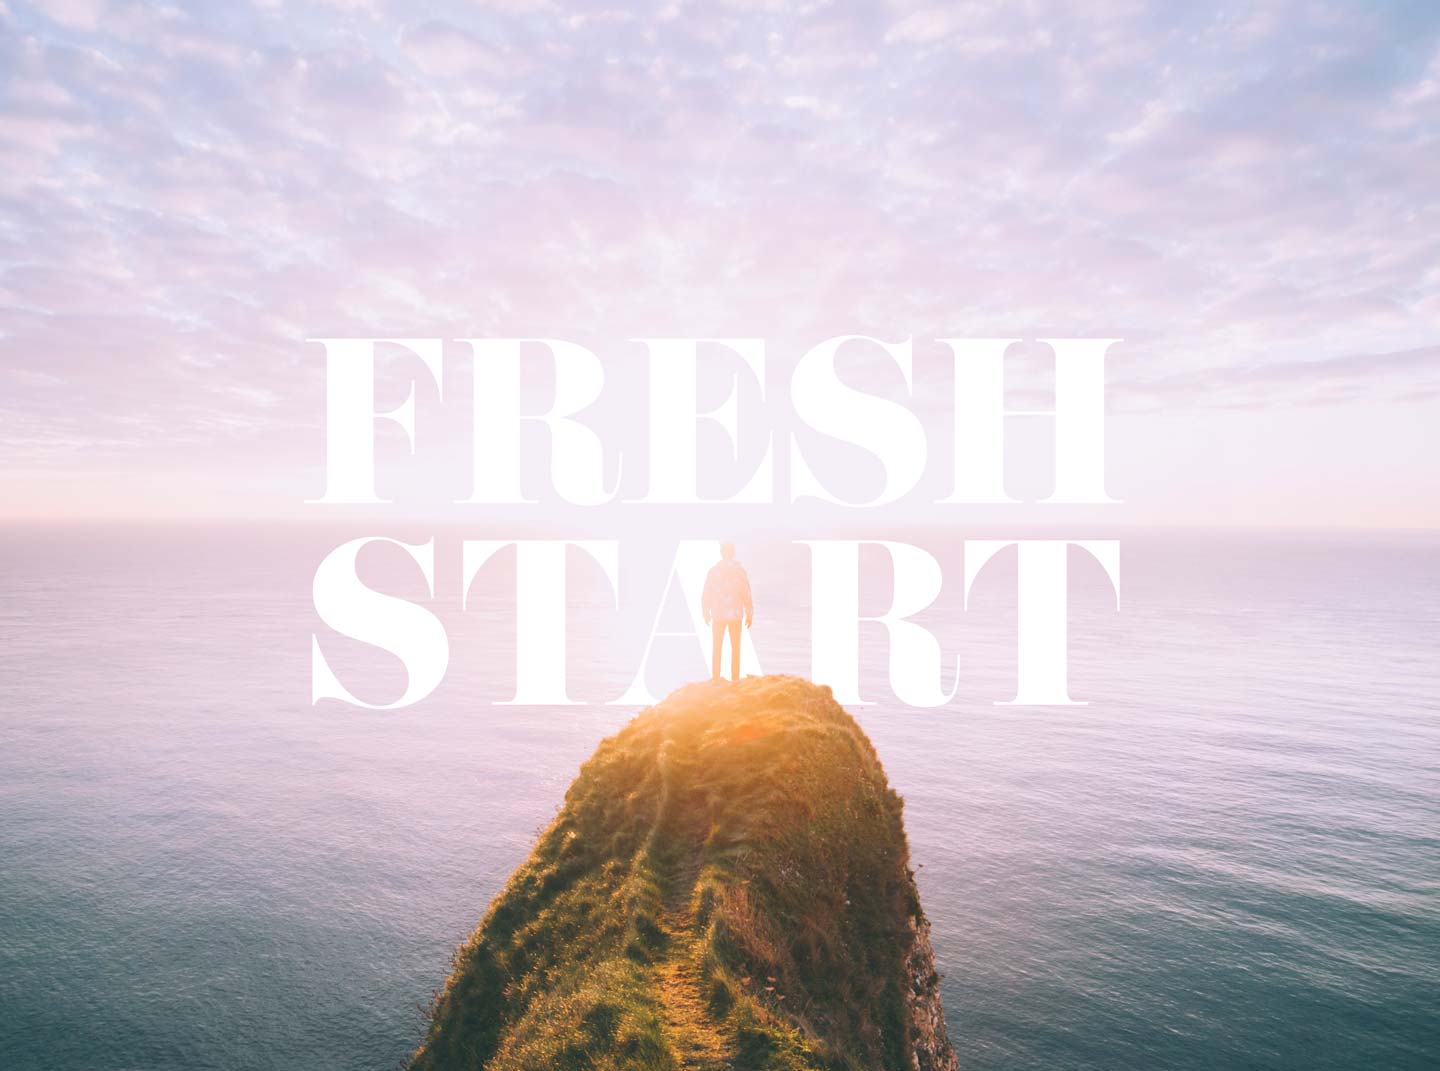 Fresh Start — Uplifting Royalty-Free Music for Commercial Use